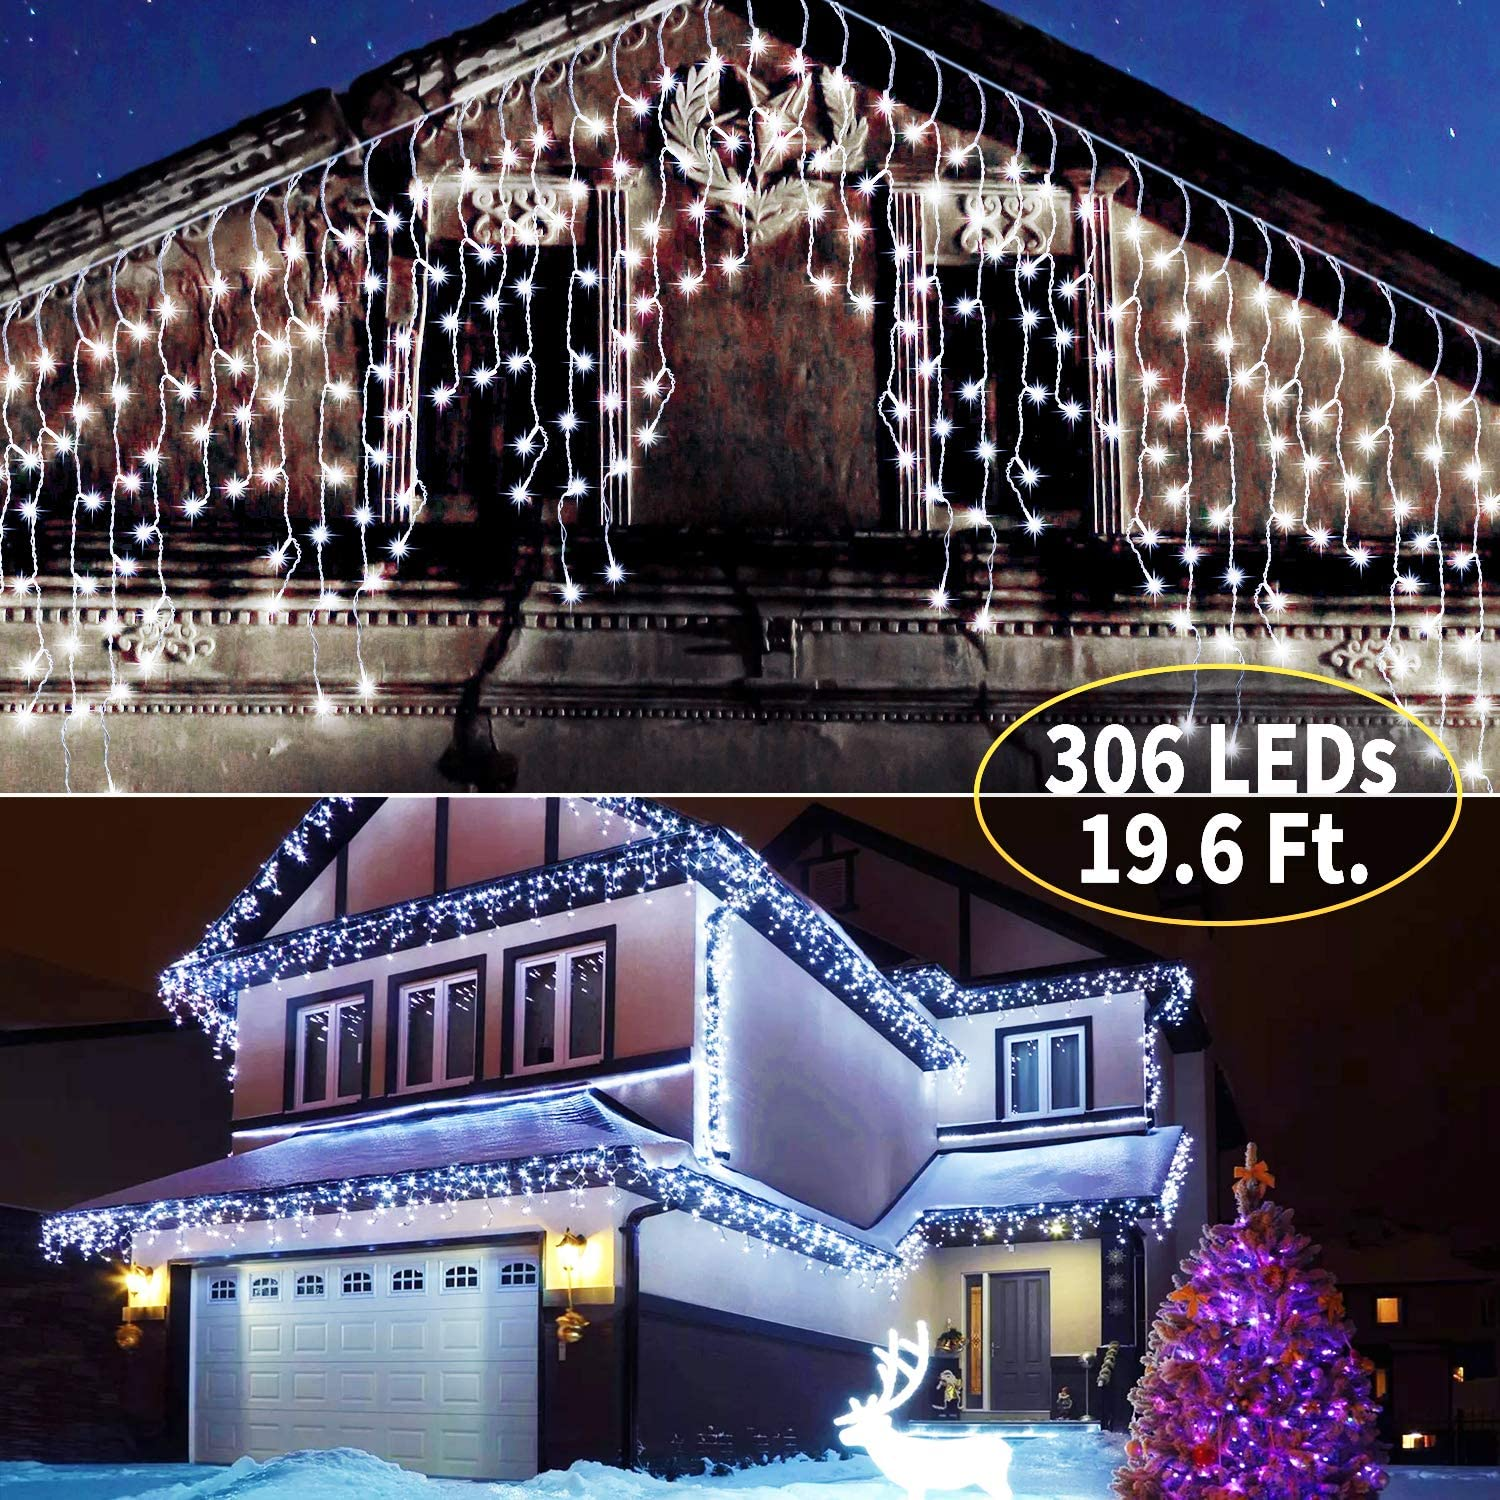 Brightown Icicle Lights: 306 LED 19.6 Ft. 54 Drops Christmas Lights Outdoor with Remote Control Set Time & 8 Light Modes for Christmas Halloween Party Decorations Icicle Curtain Lights | White